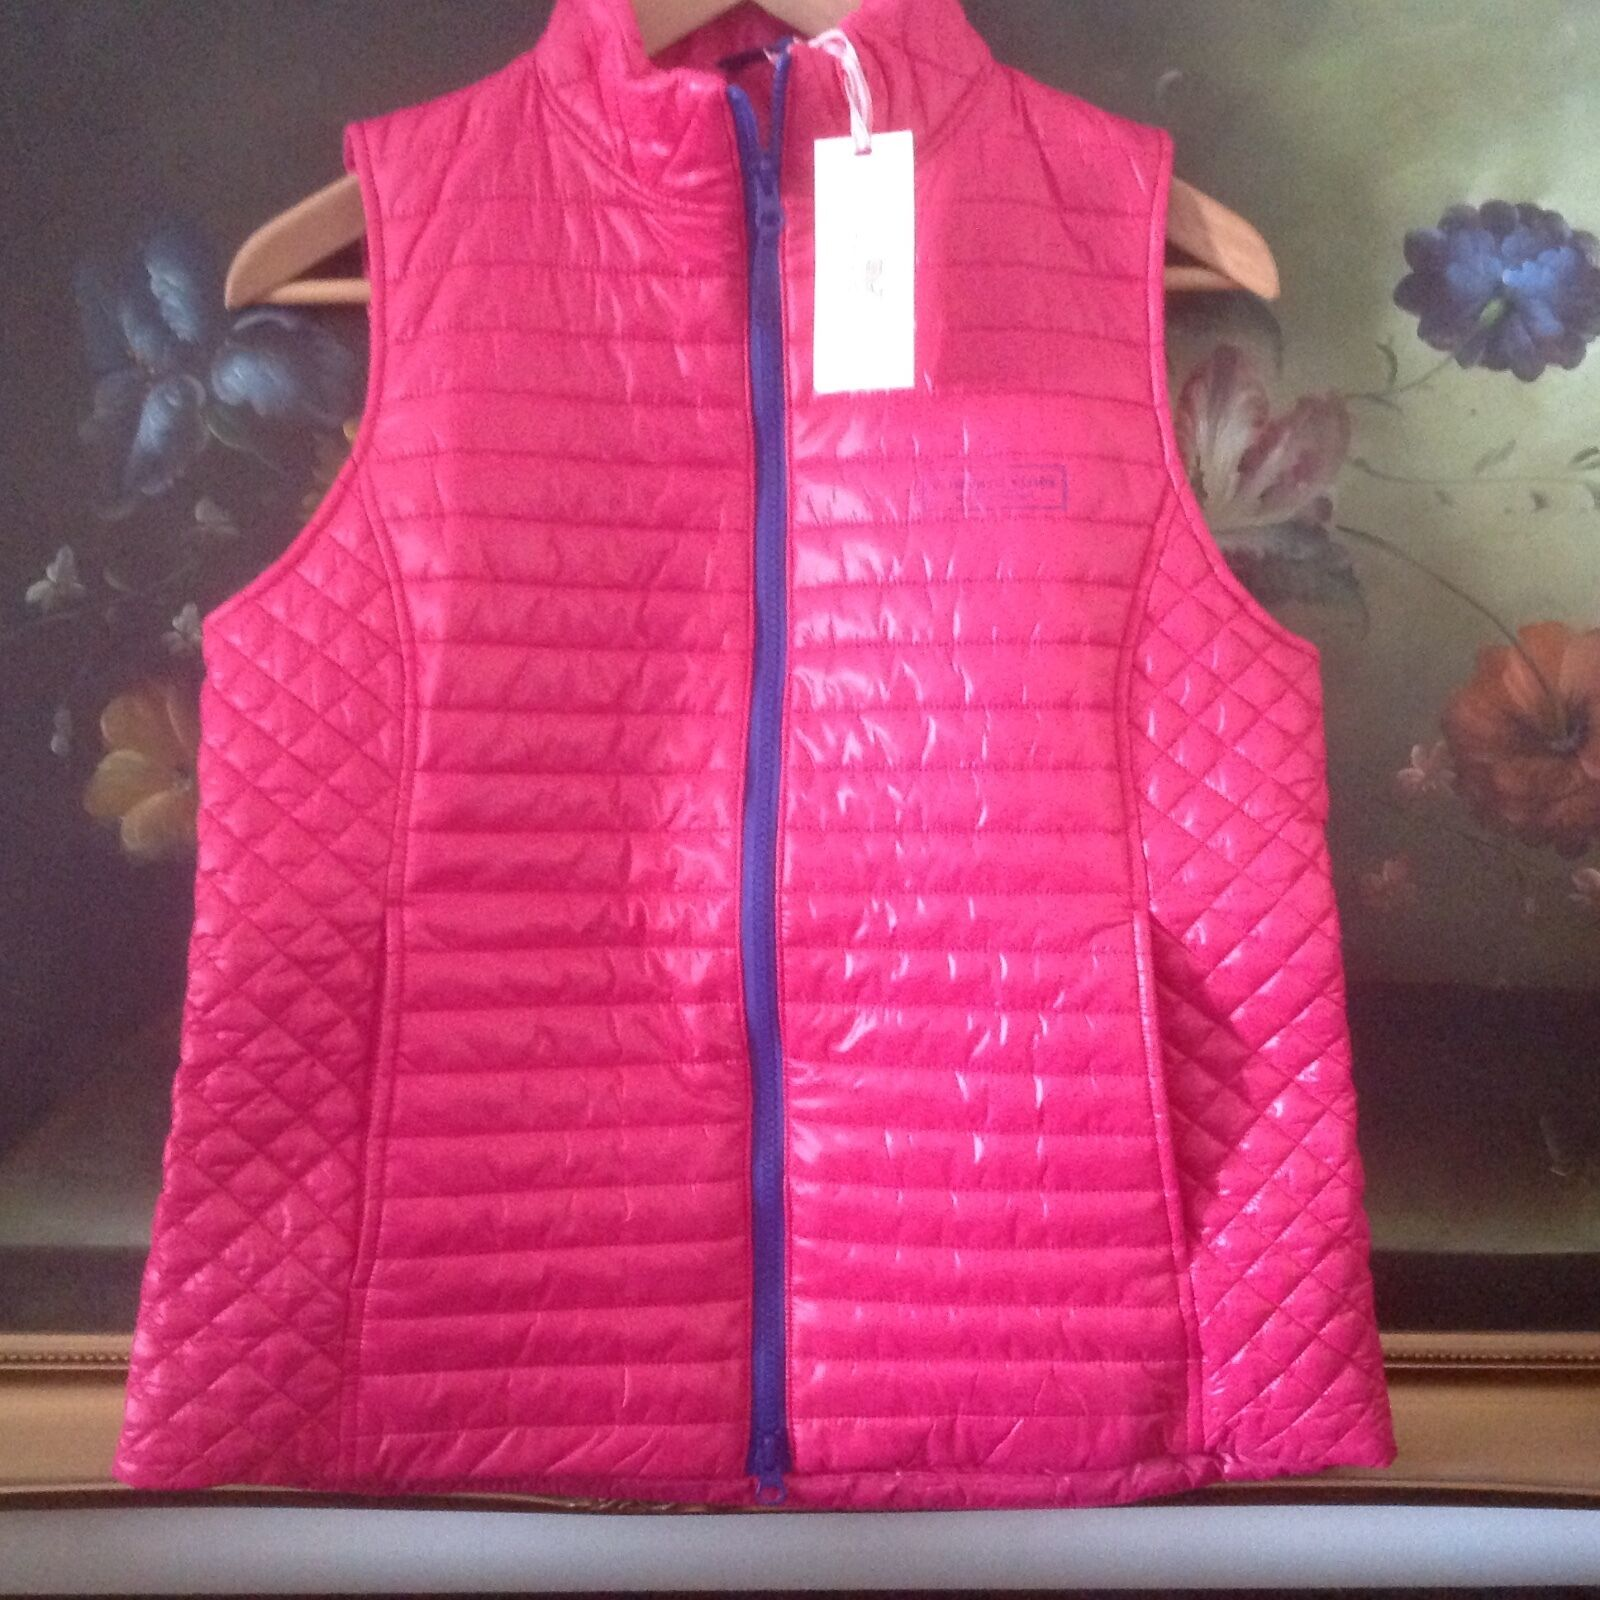 NWT VINEYARD VINES WOMEN'S weekend Puffer Vest pink SIZE S D5